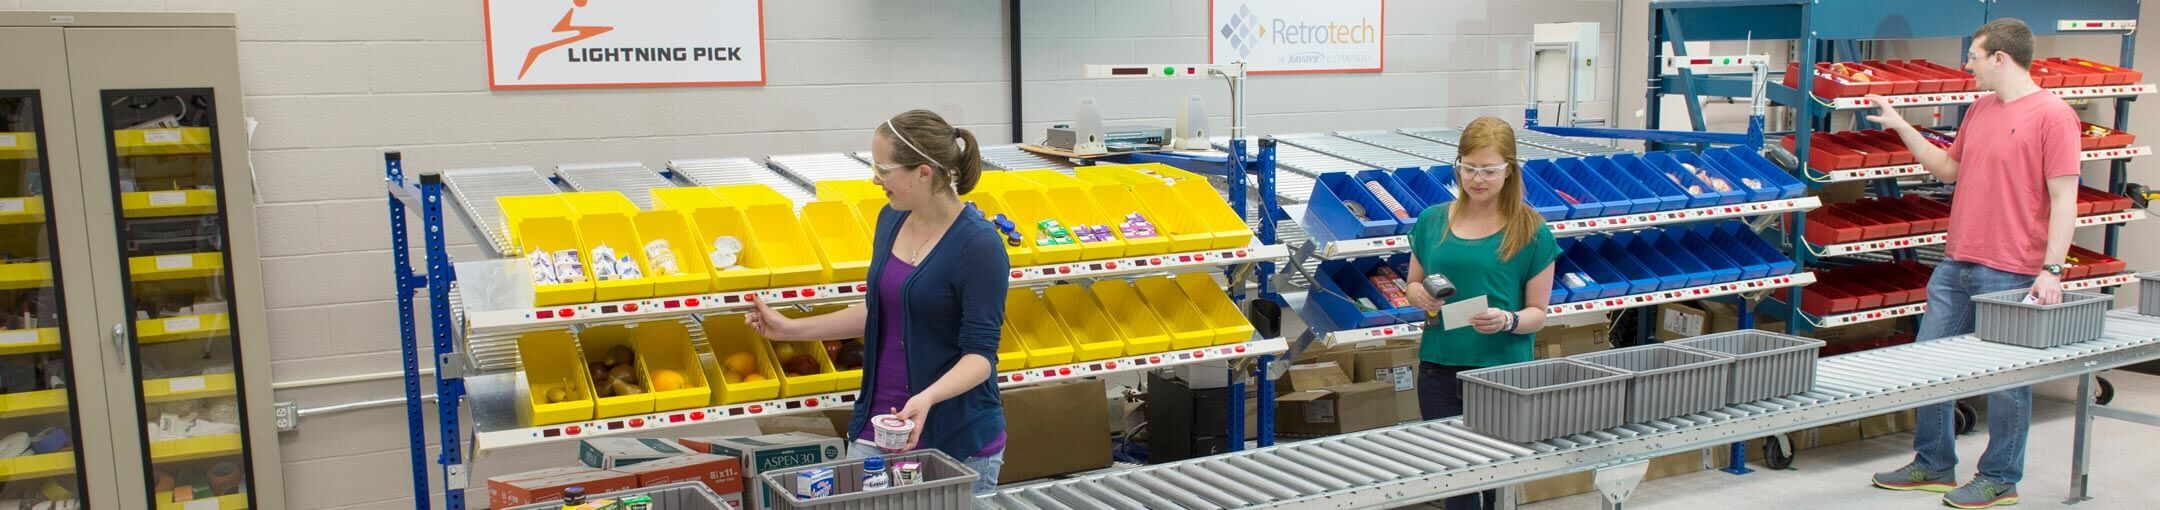 Students stand in front of three shelves of bins. The bins are yellow, blue, and red.